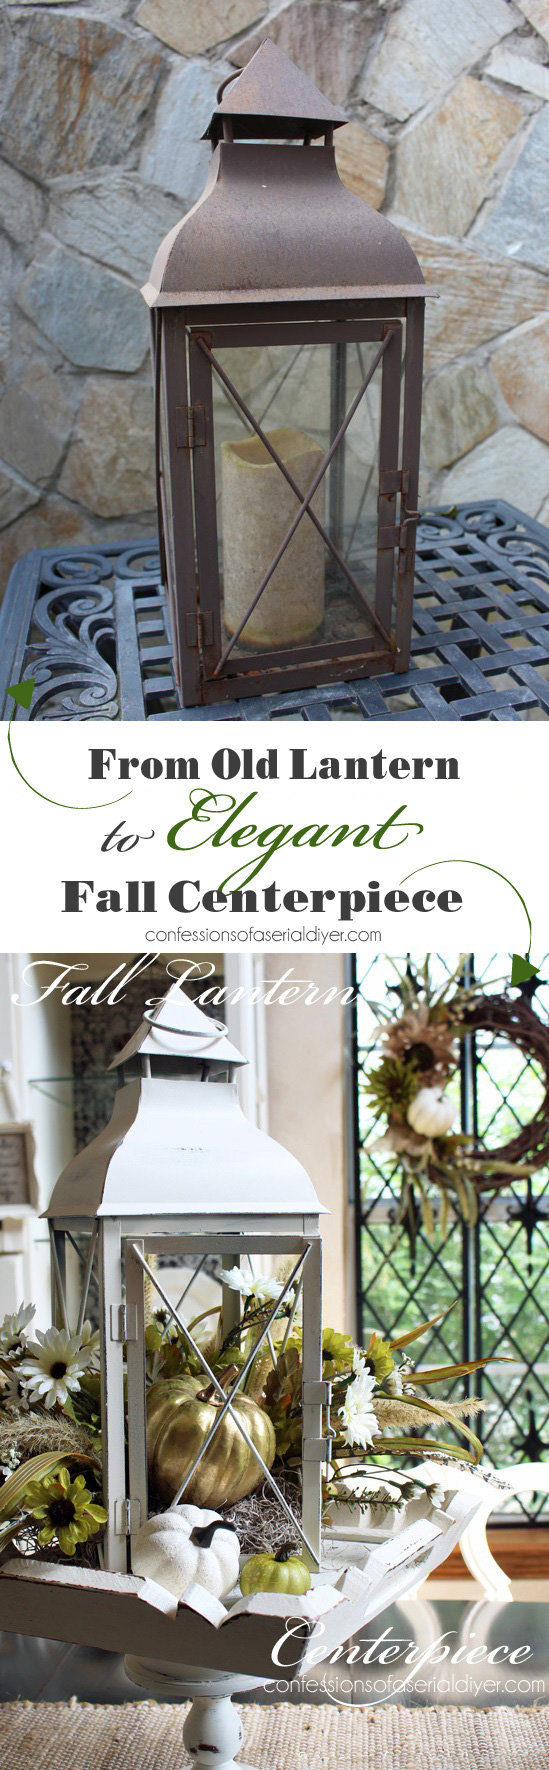 Turn a lantern into an elegant centerpiece for Fall from confessionsofaserialdiyer.com